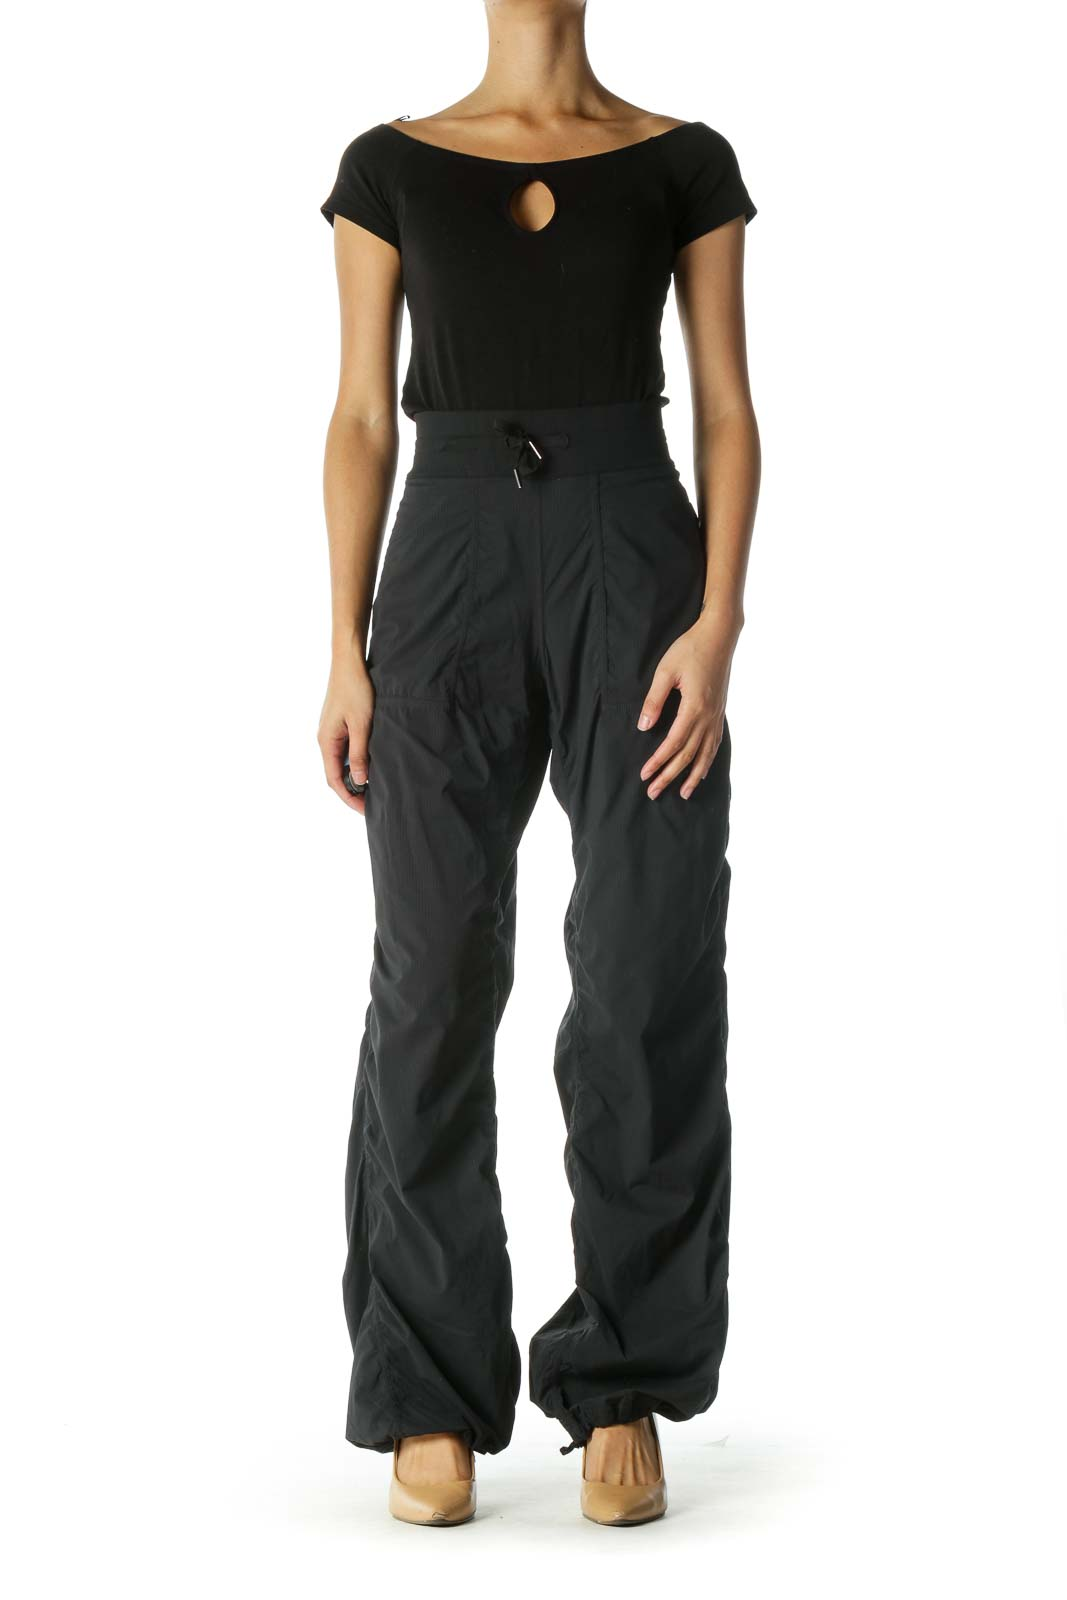 Black Active wear Sweat Pants